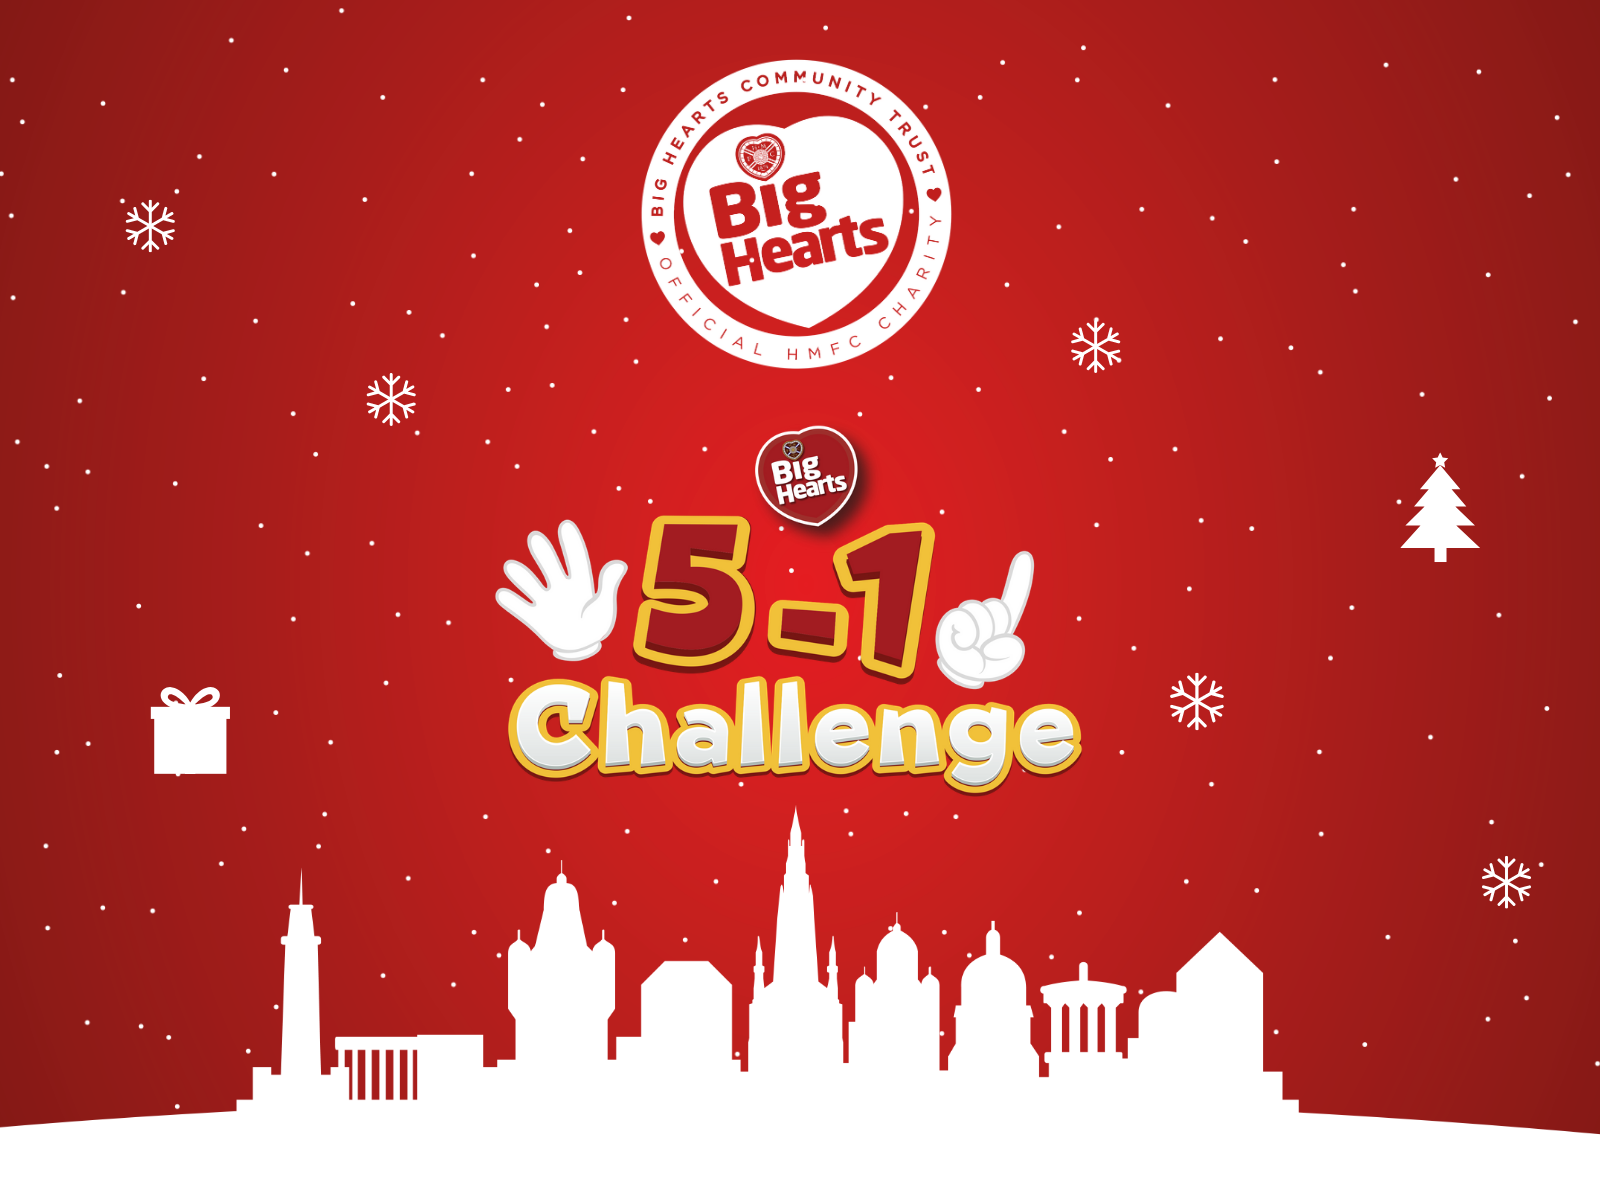 » Take on the 5-1 challenge to make a positive difference at Christmas!